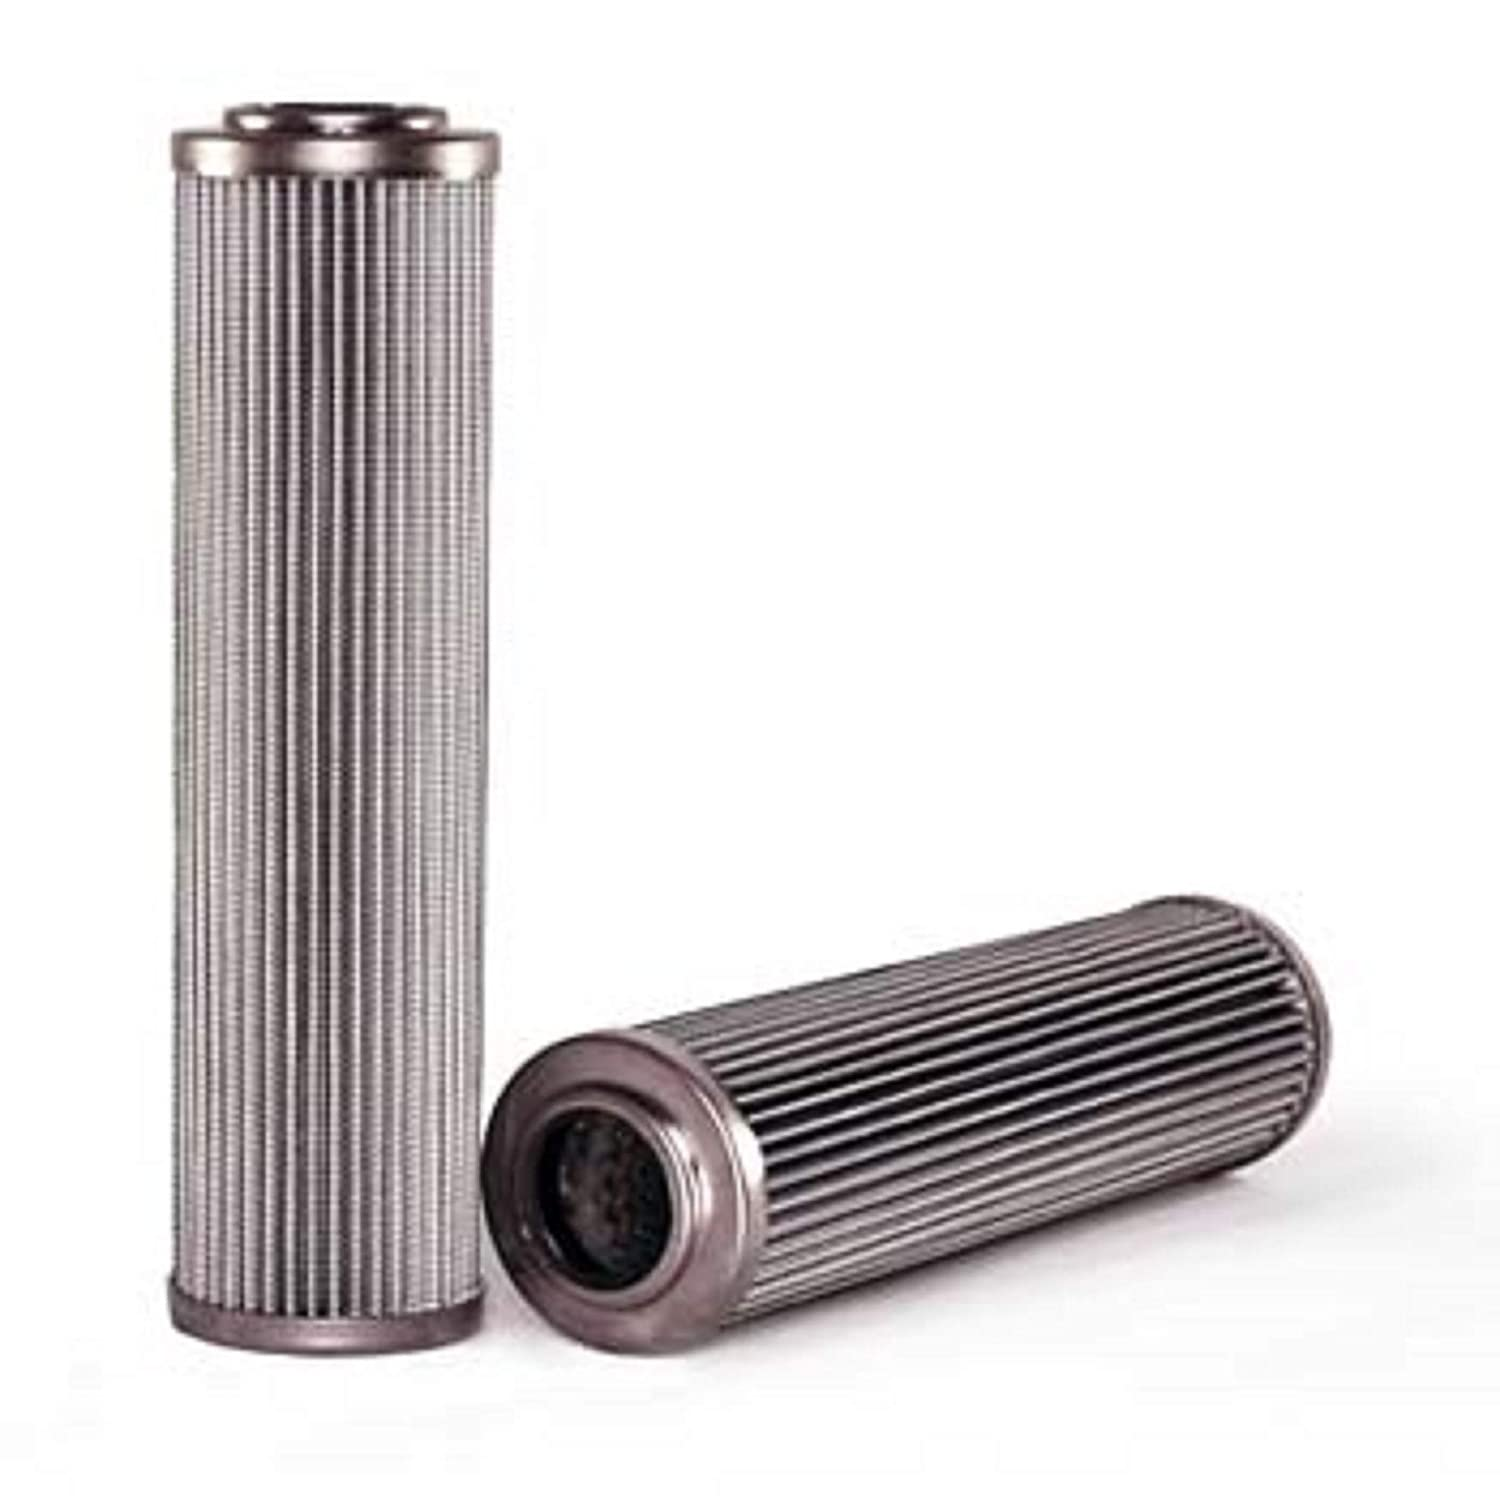 MAIN-FILTER MN-MF0064979 Direct Interchange for MAIN-FILTER-MF0064979 Stainless Steel Millennium Filters